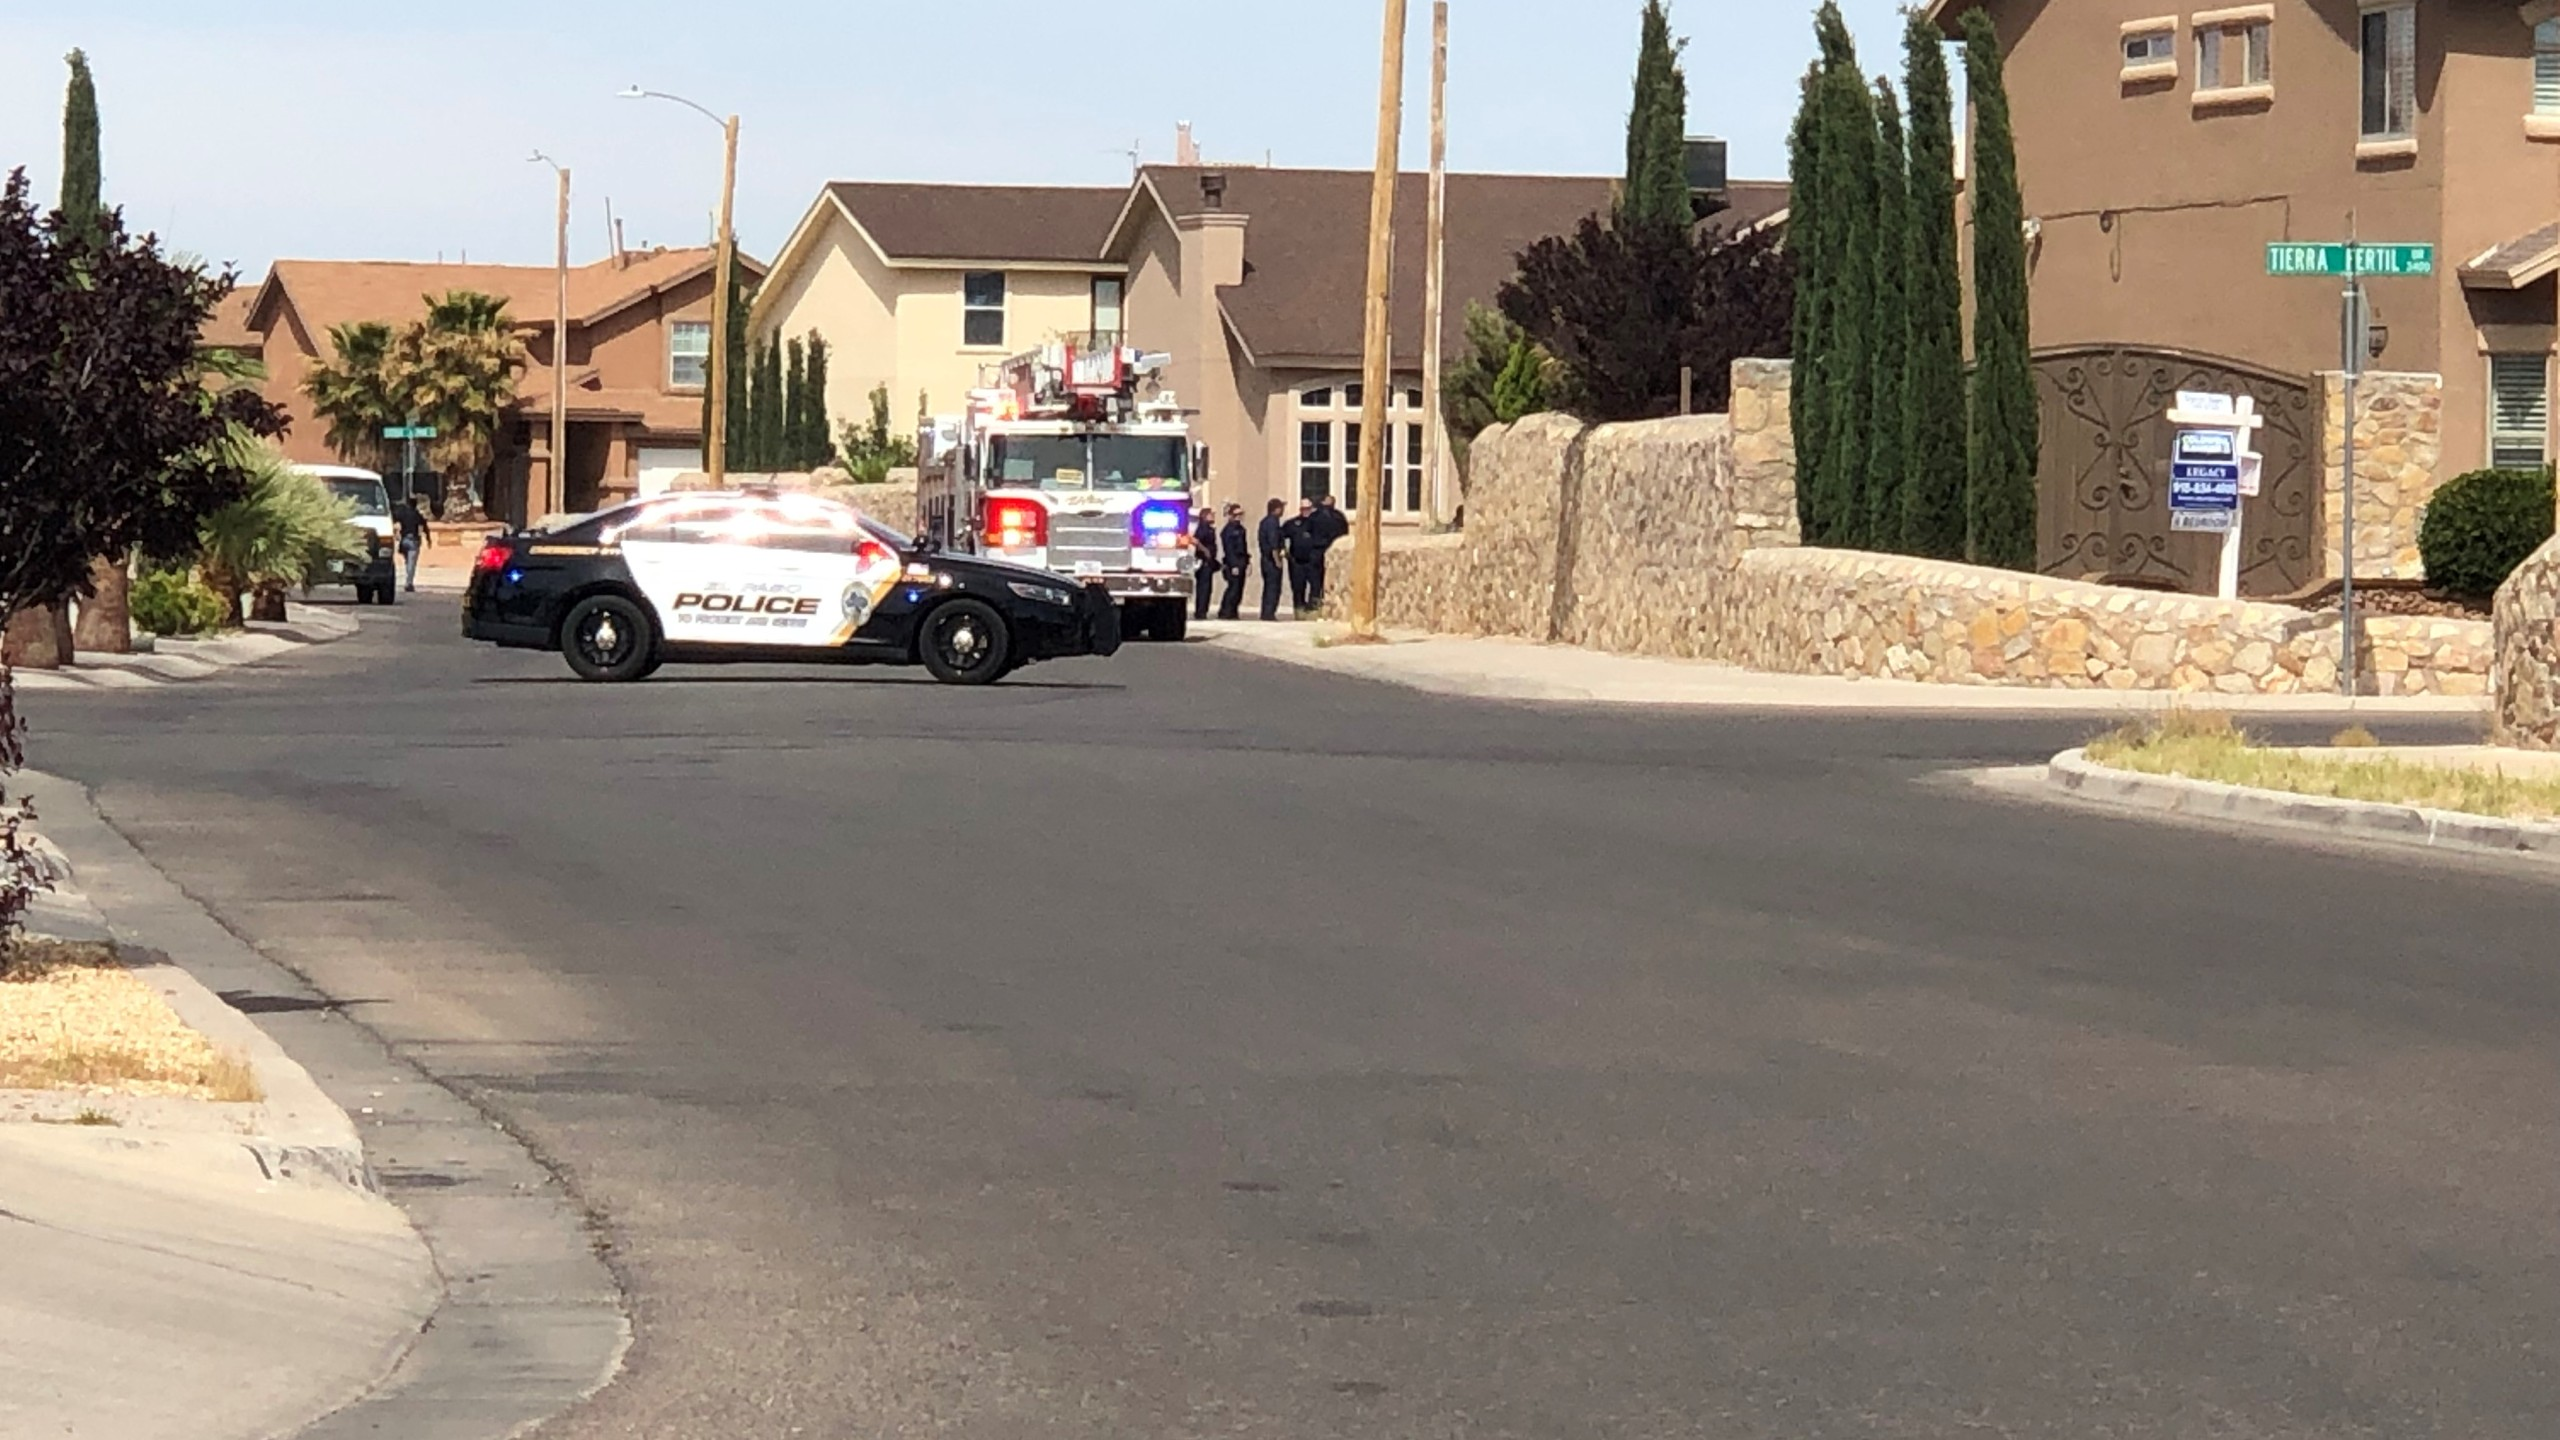 Shots fired in Far East El Paso neighborhood and subject barricaded in home